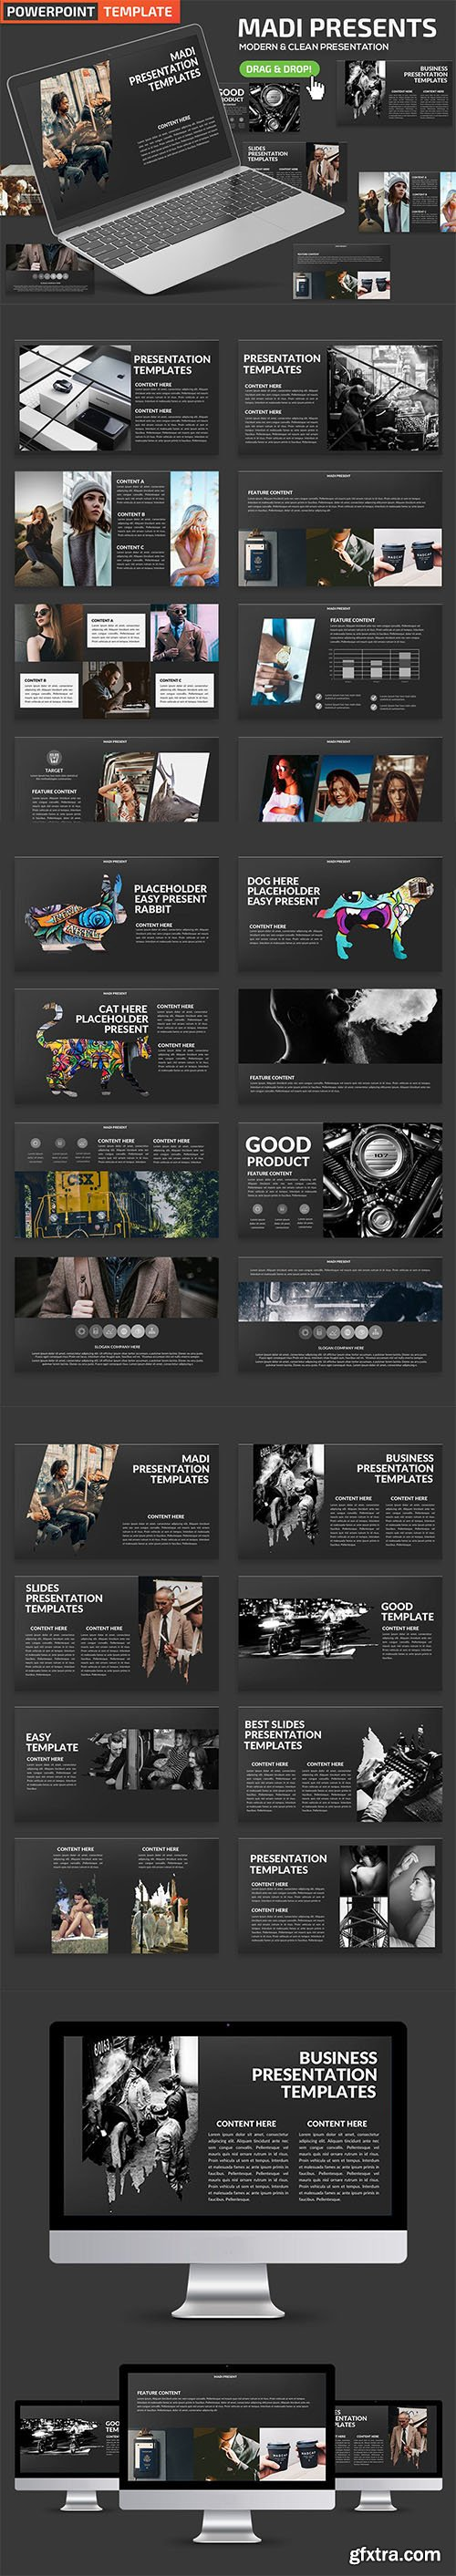 Madi Powerpoint and Keynote Template